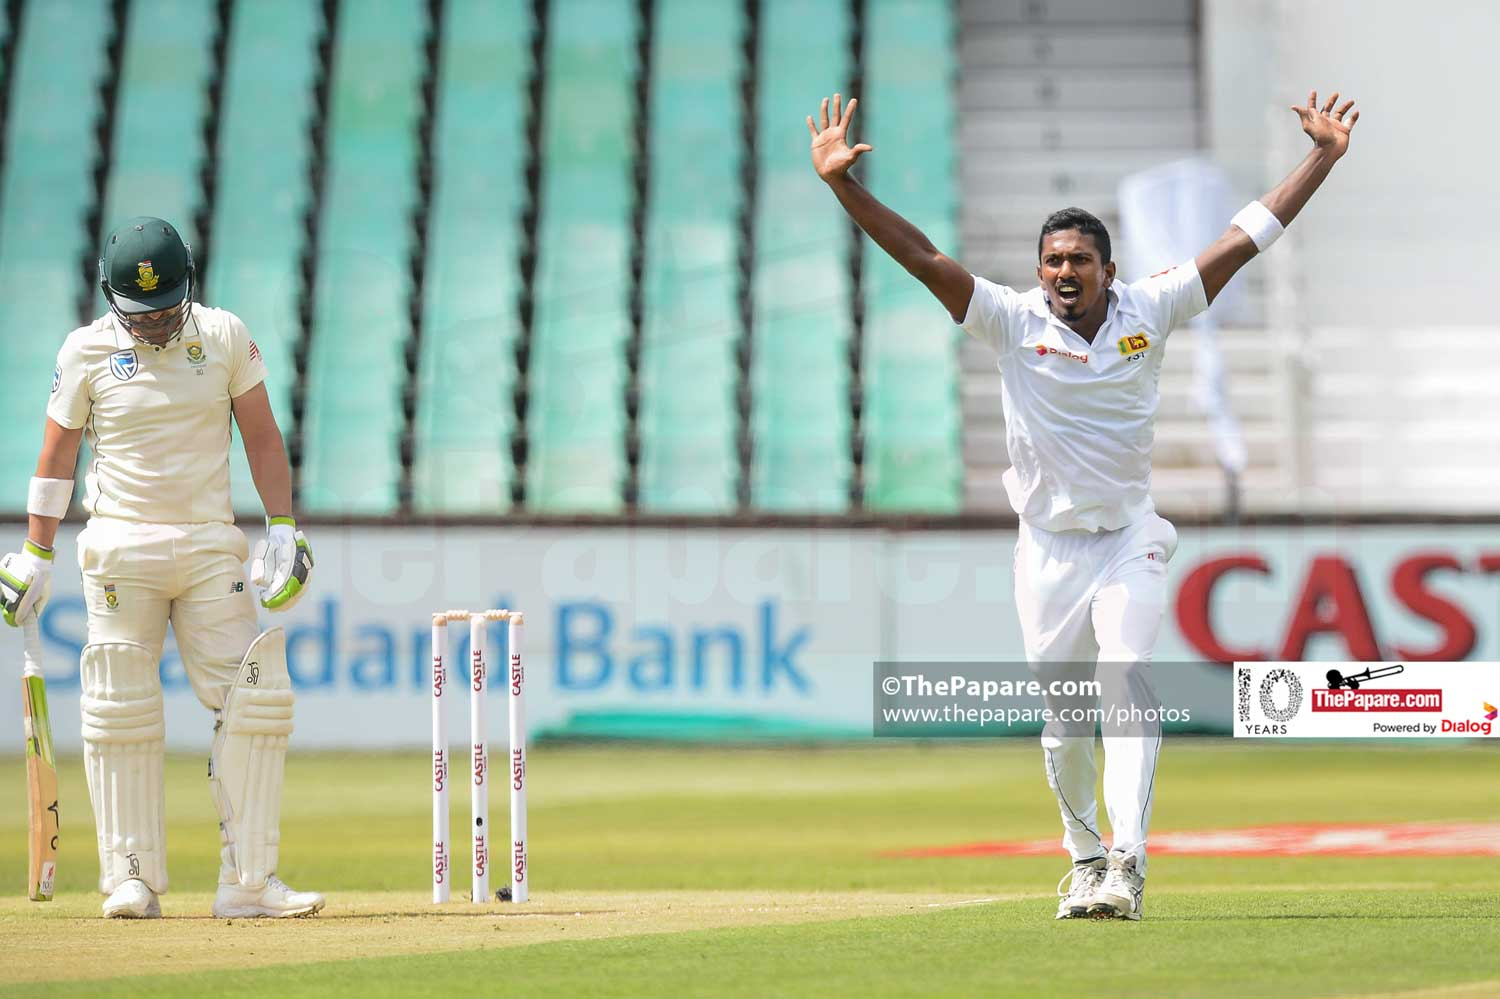 Sri Lanka Vs South Africa 1st Test Day 1